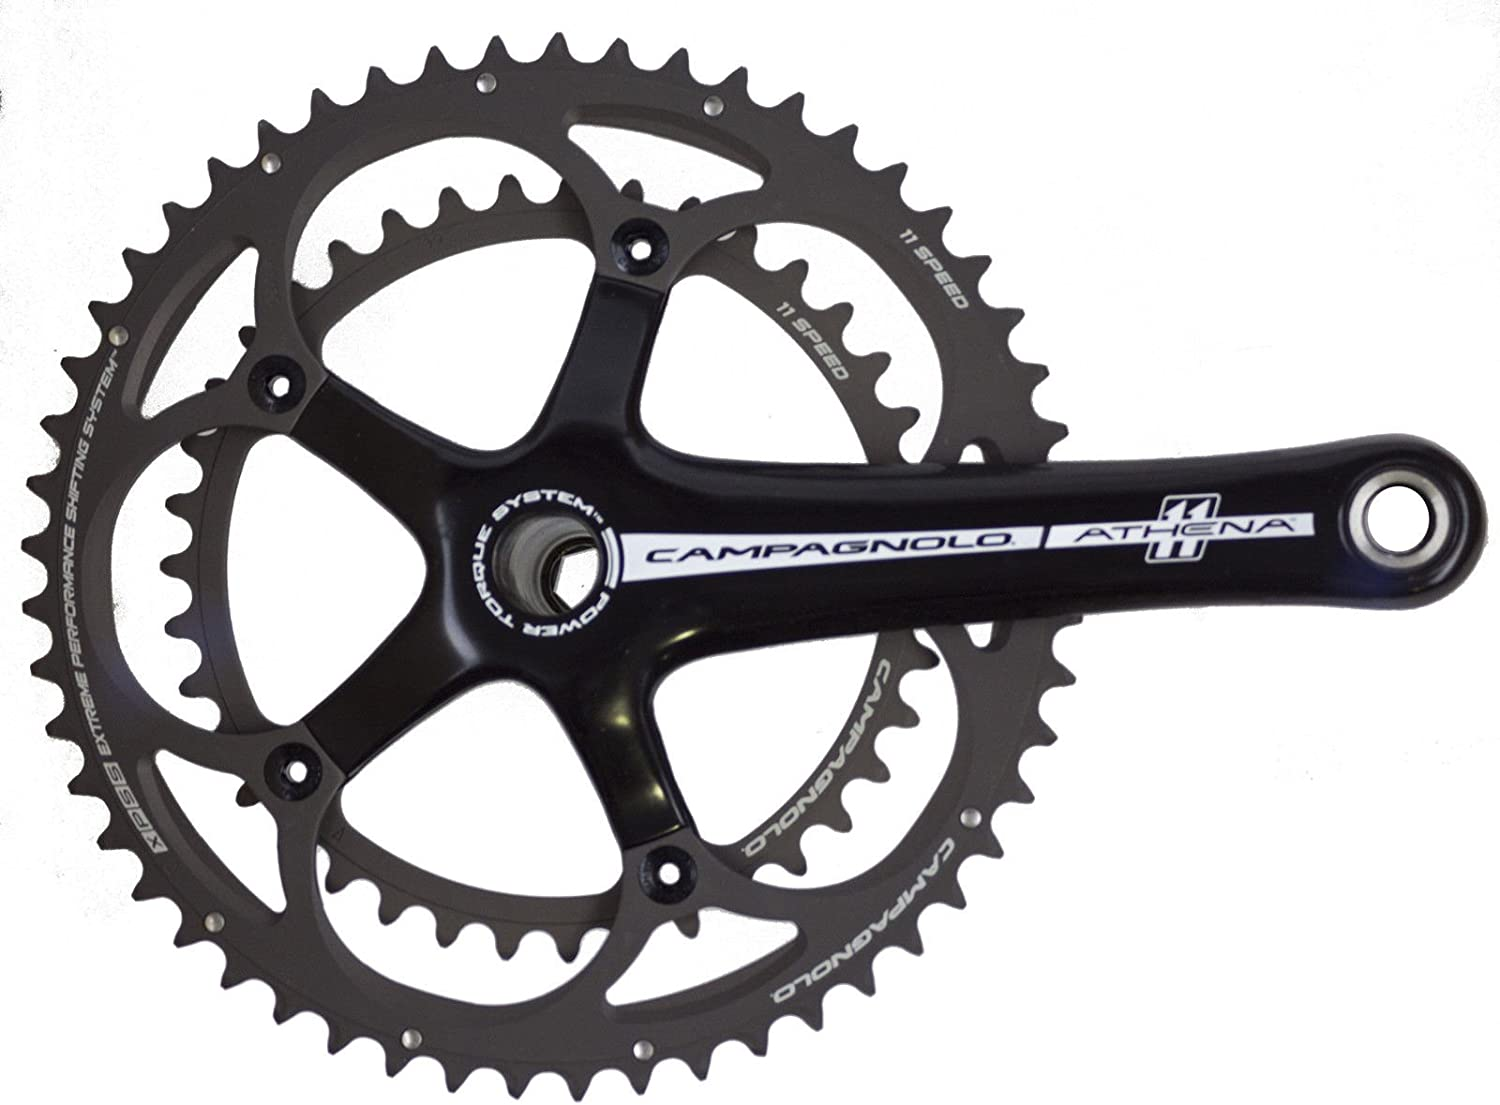 Campagnolo Athena Crankset Carbon Power Torque System 11 Speed 172.5 mm 53-39t